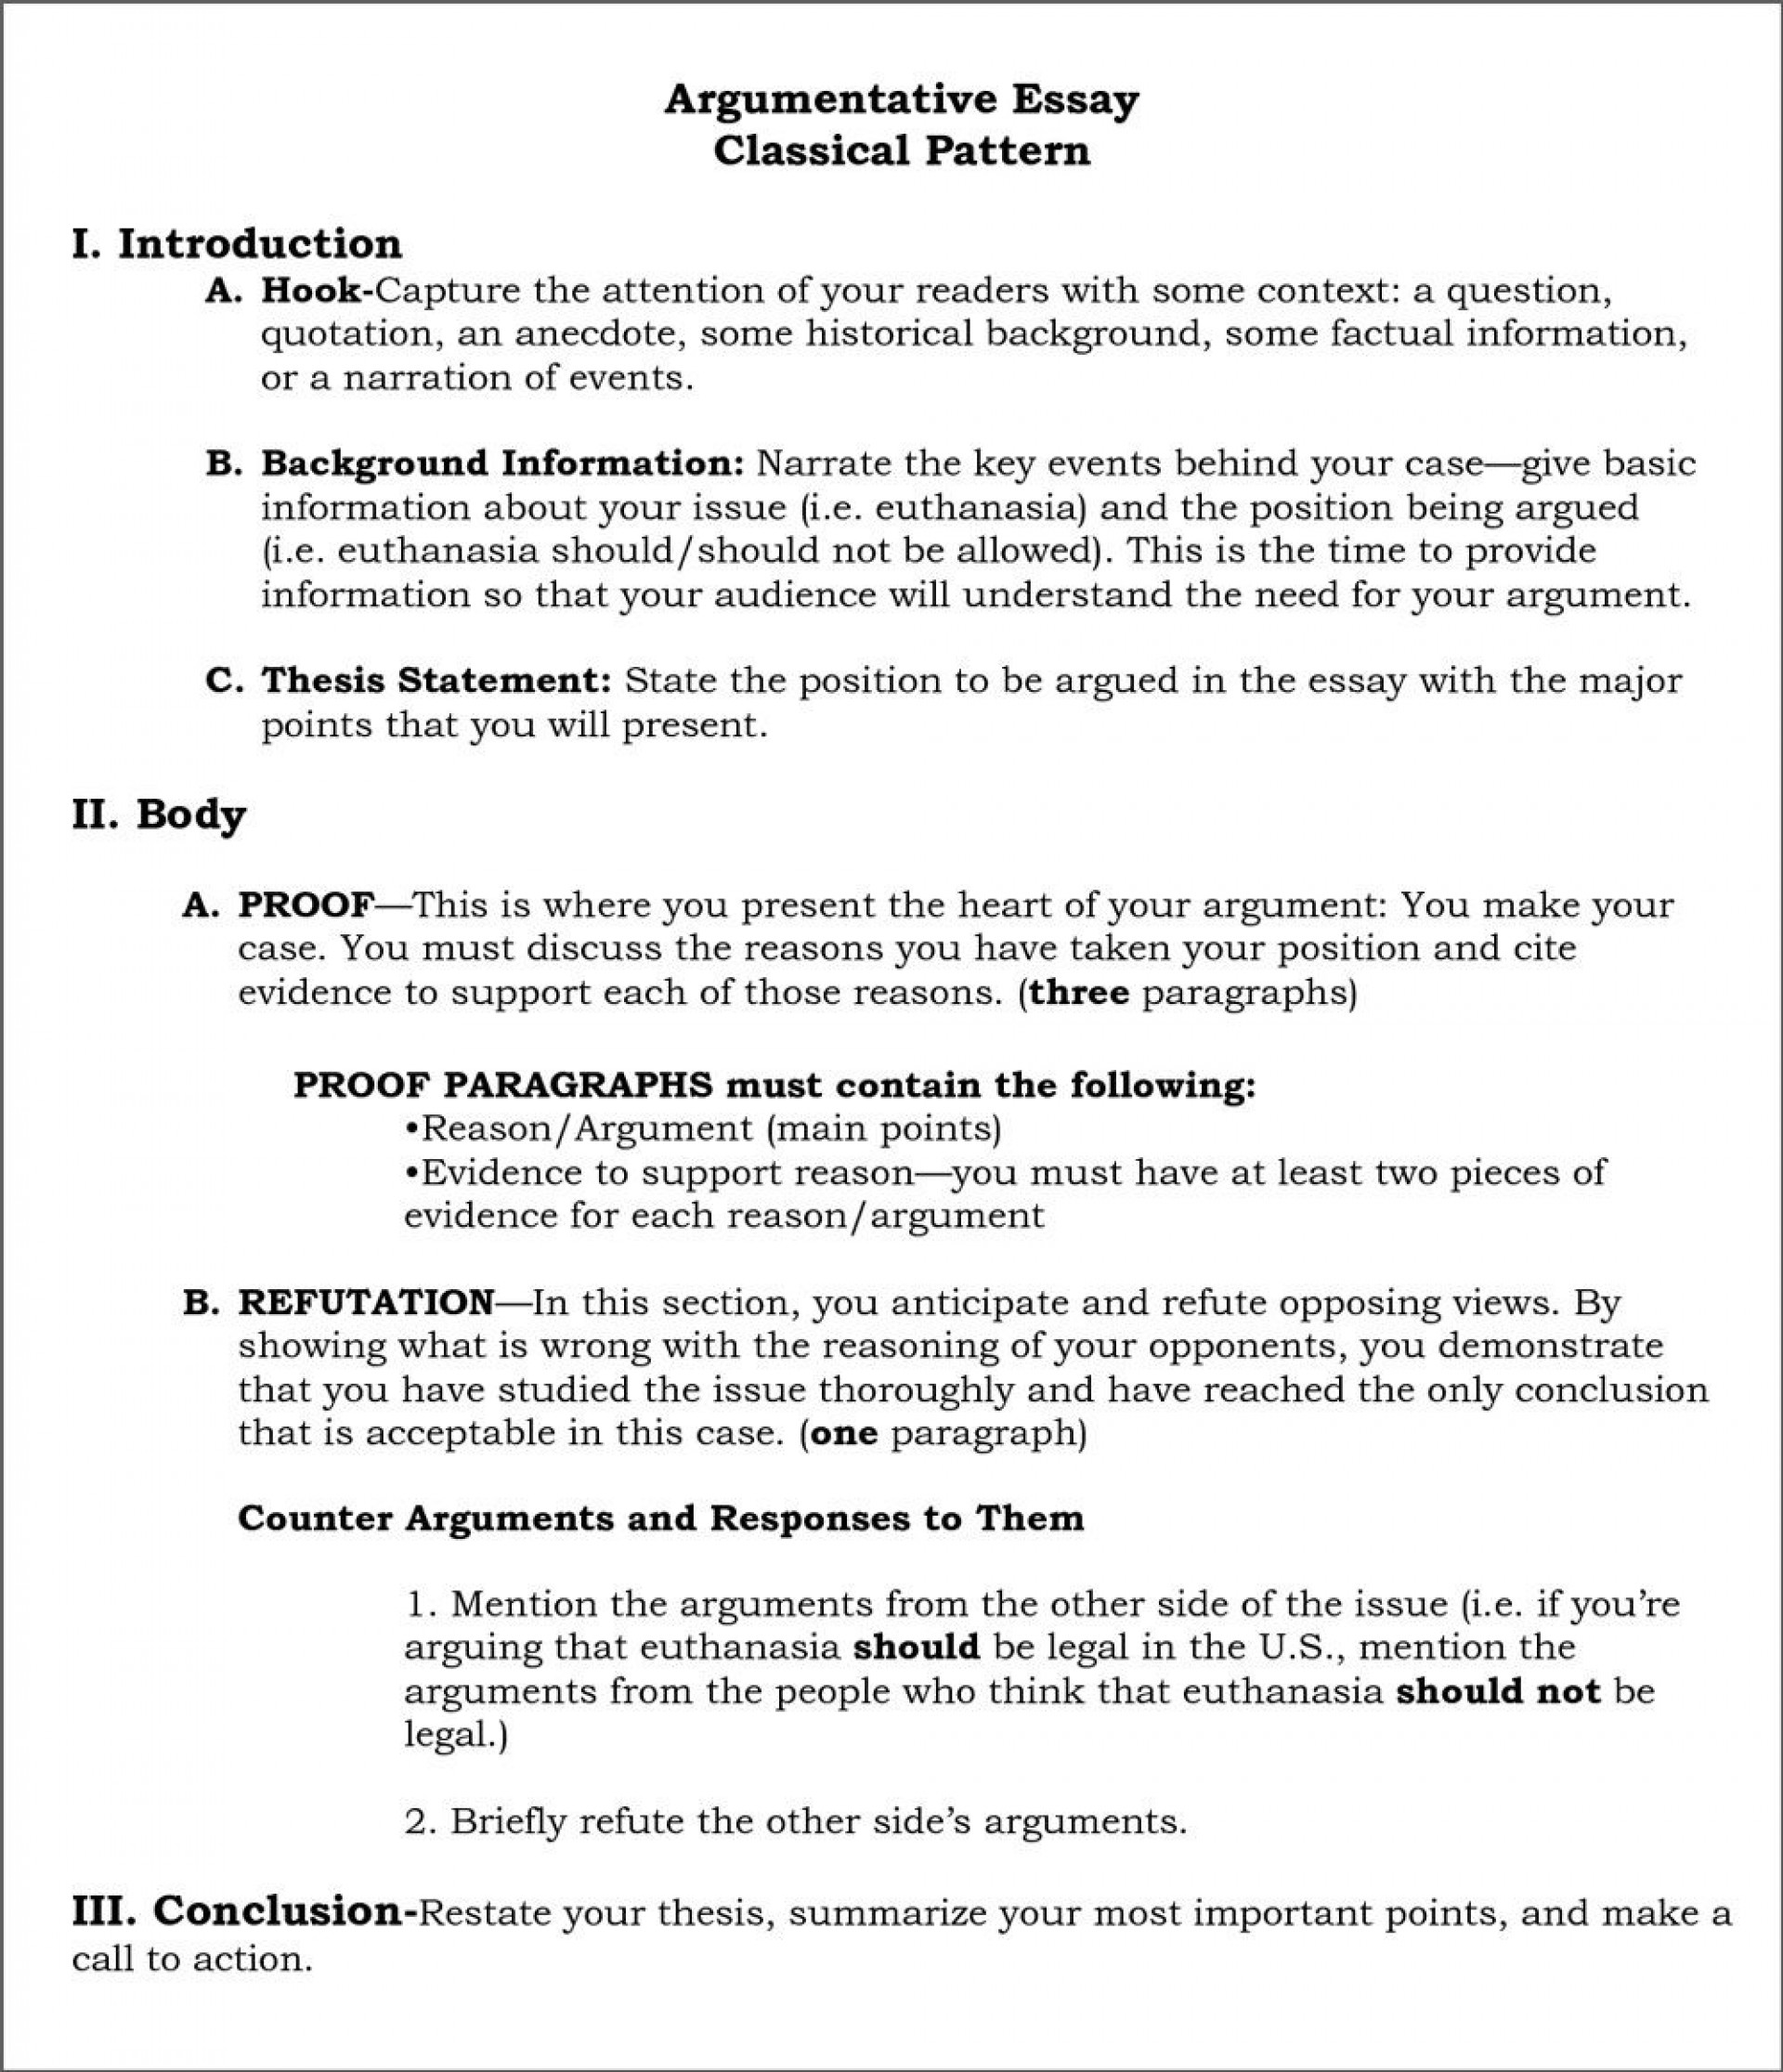 012 How To Conclude An Argumentative Essay Writing Service Pinterest Introduction Pdf Ppt Step By About Fire Prevention Quiz Edgenuity Middle School Top Teach Write A Closing Paragraph For 1920